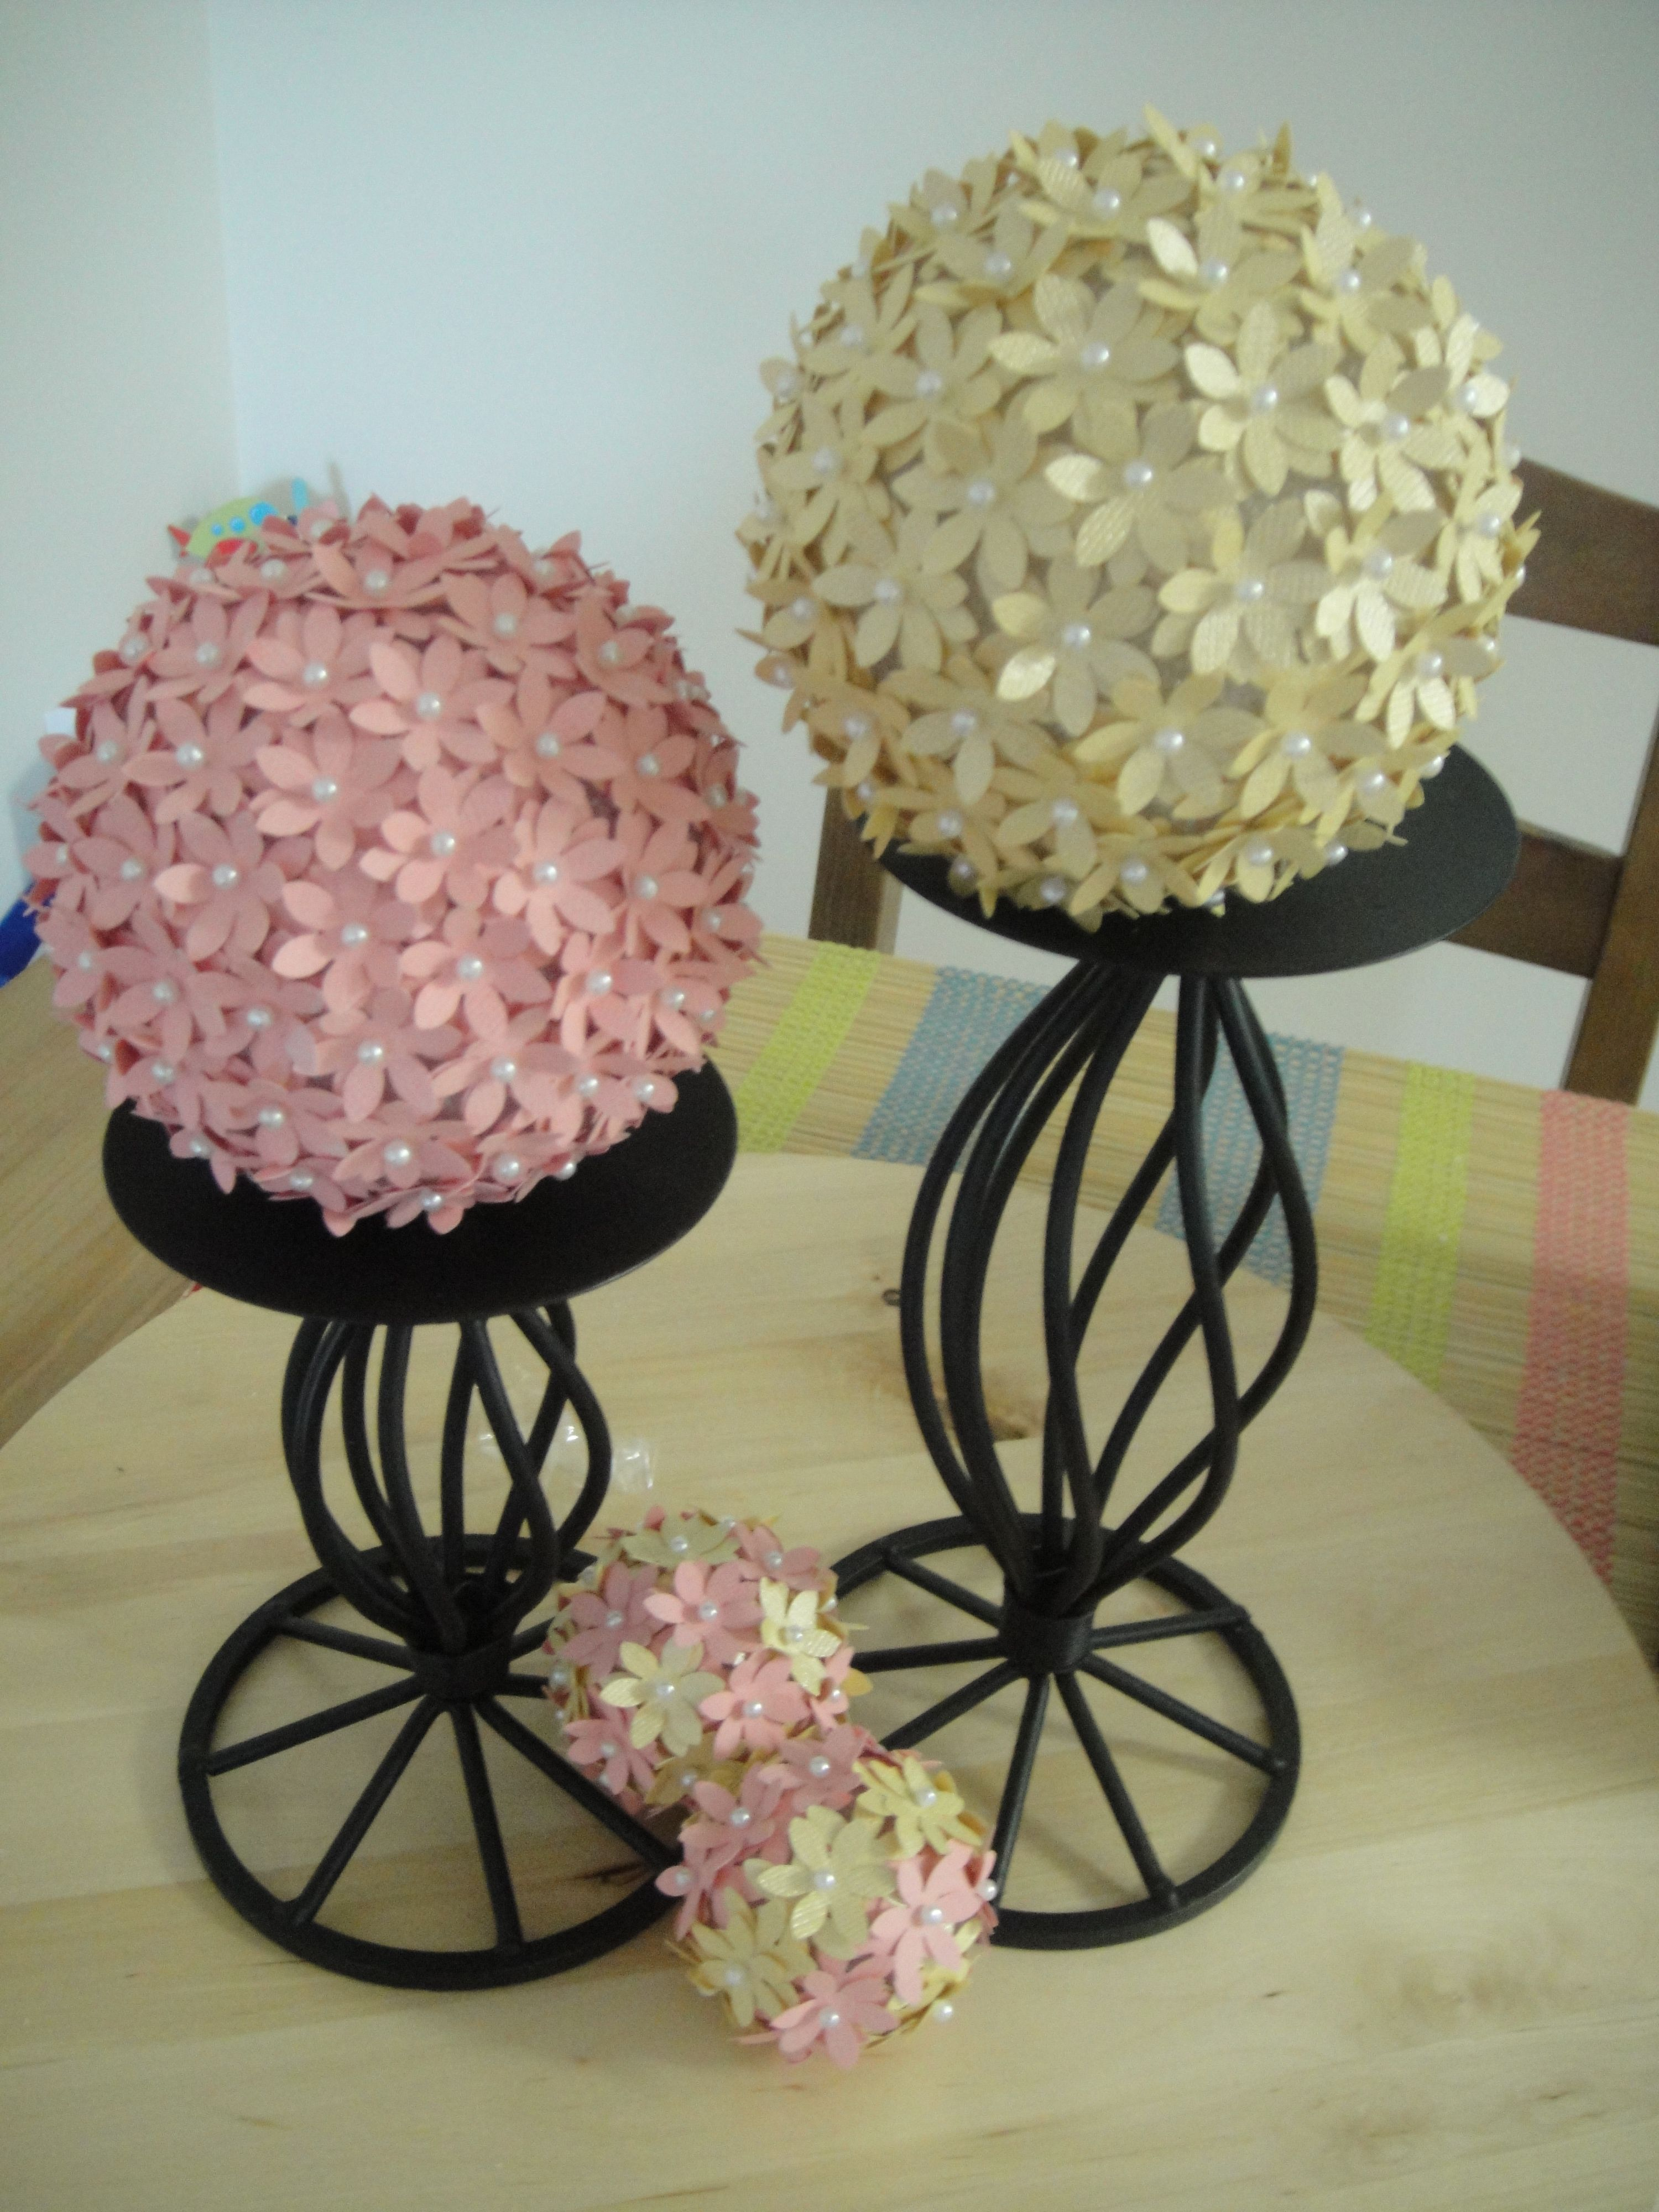 Decorative Orbs For Bowls | Decorative Design